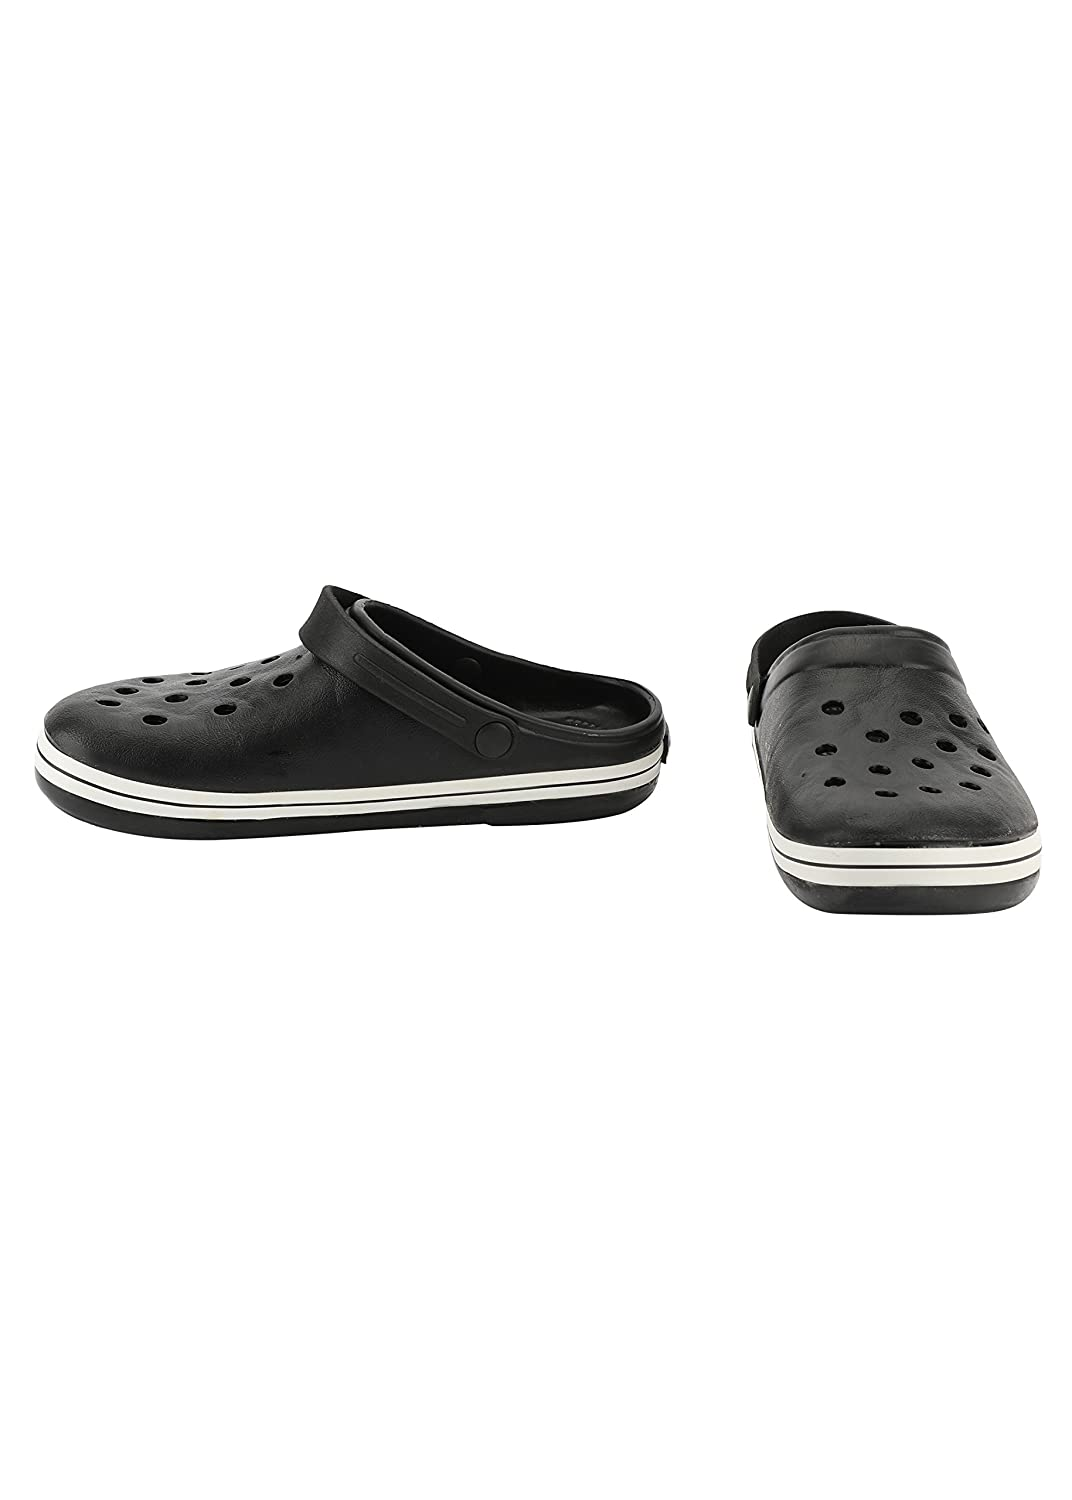 4b9834835ed6c Plush Men s PVC Crocs Shoes  Buy Online at Low Prices in India - Amazon.in